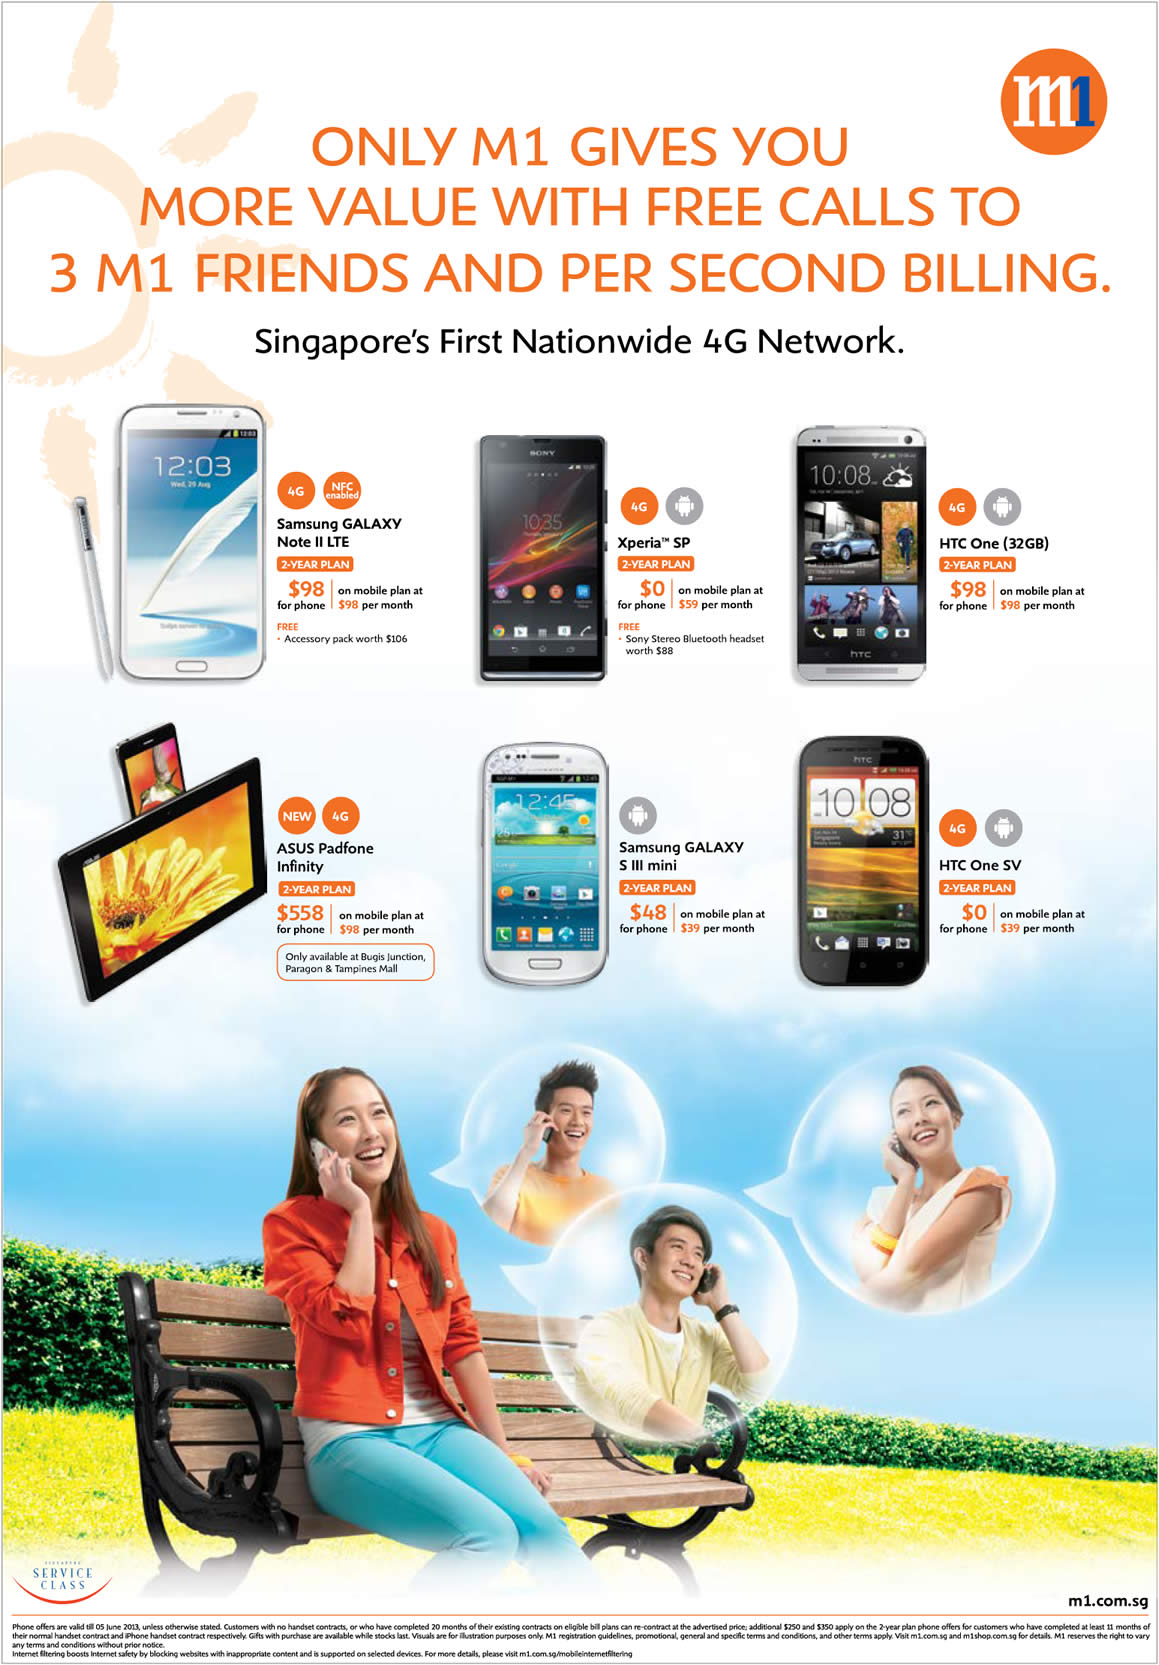 Samsung Galaxy Note II LTE, S III Mini, Sony Xperia SP, HTC One, ASUS Padfone Infinity, HTC One SV